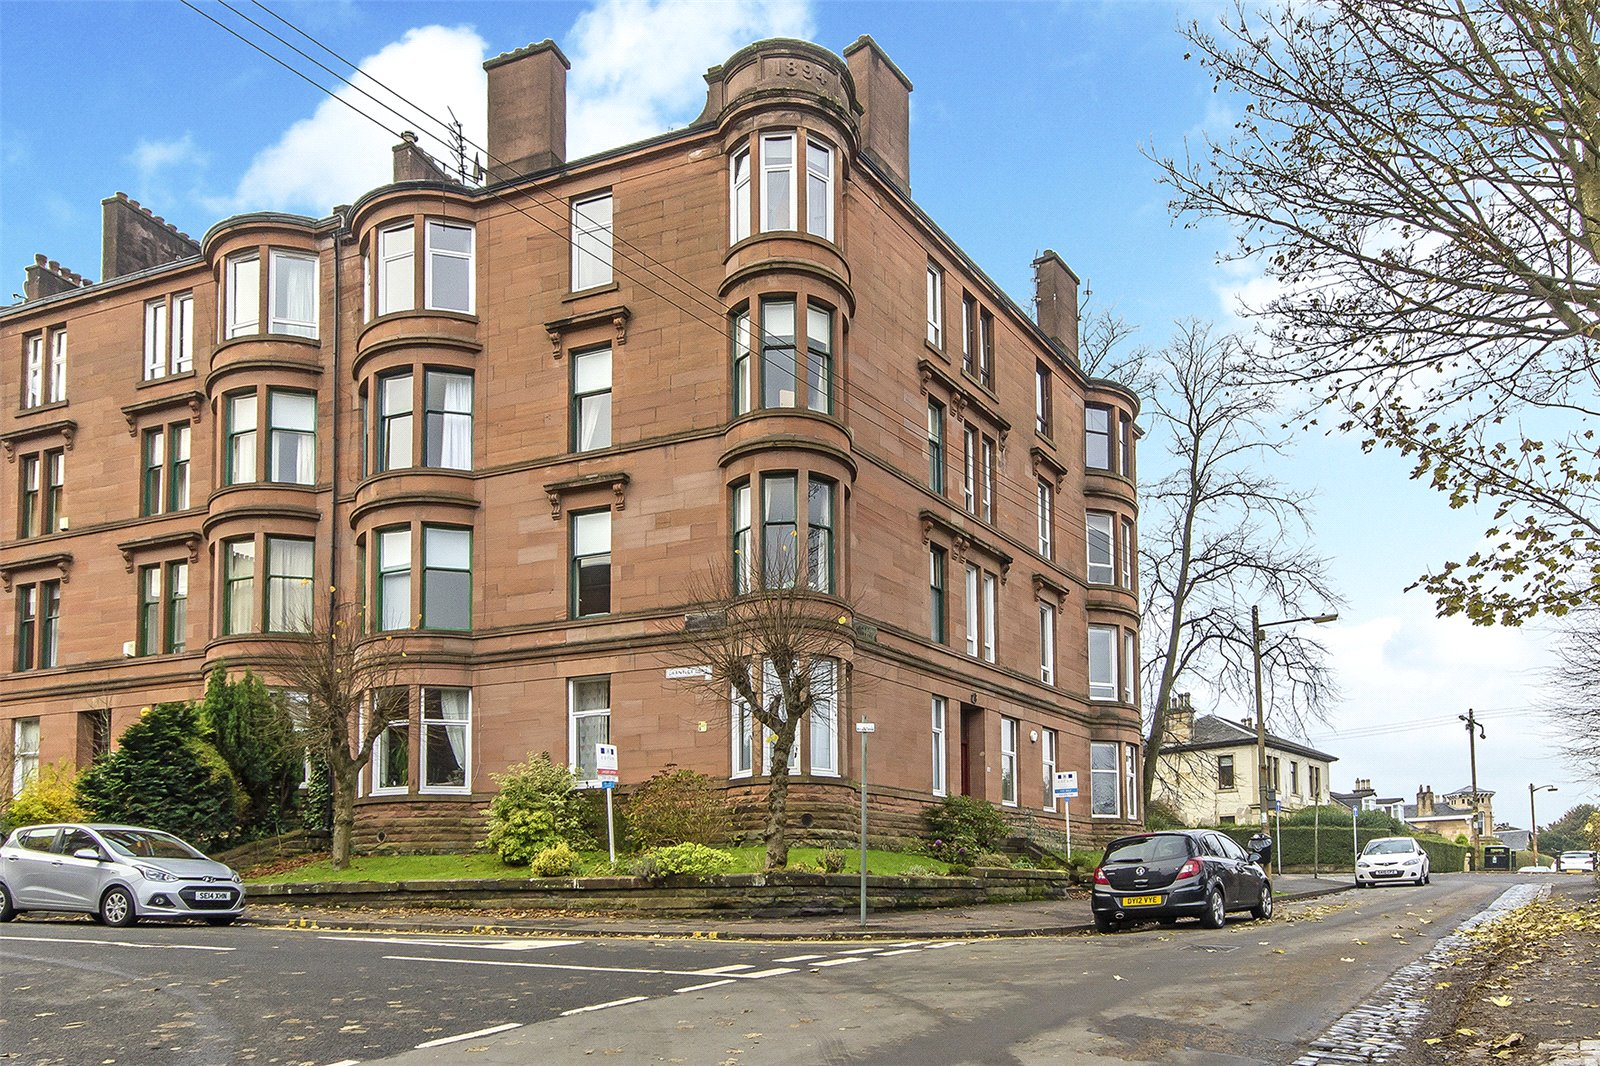 Glasgow Property of the Week: 30 Hector Road